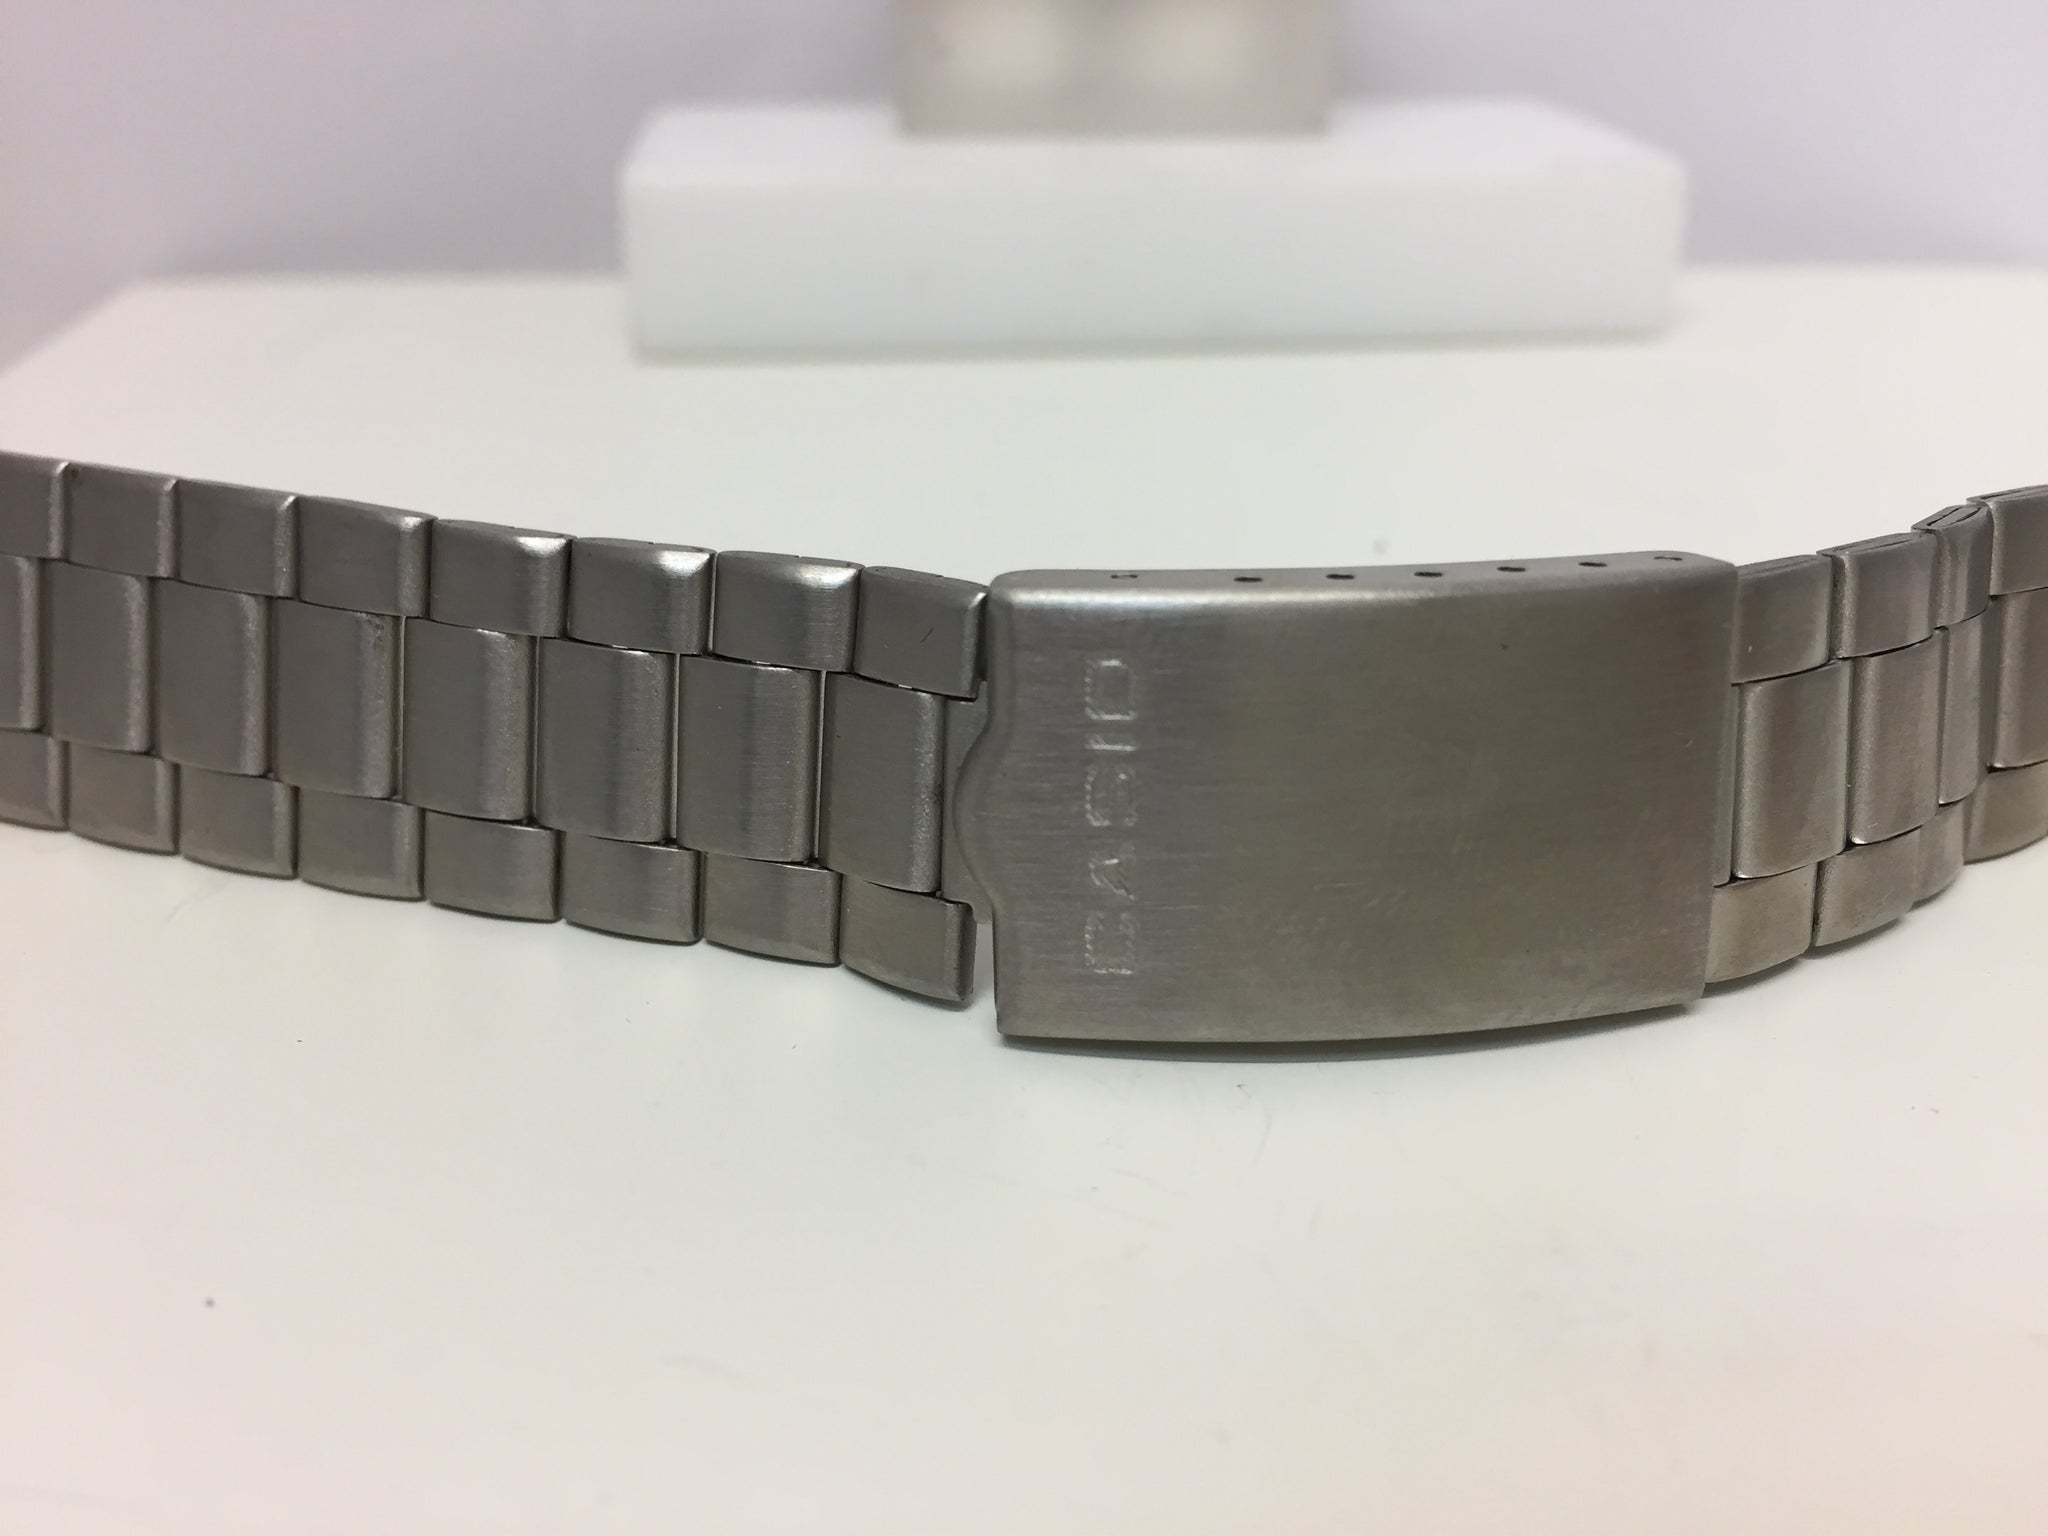 Casio Original WatchBand/Bracelet Unknown Mod 8mm. B-9961 w/o end caps